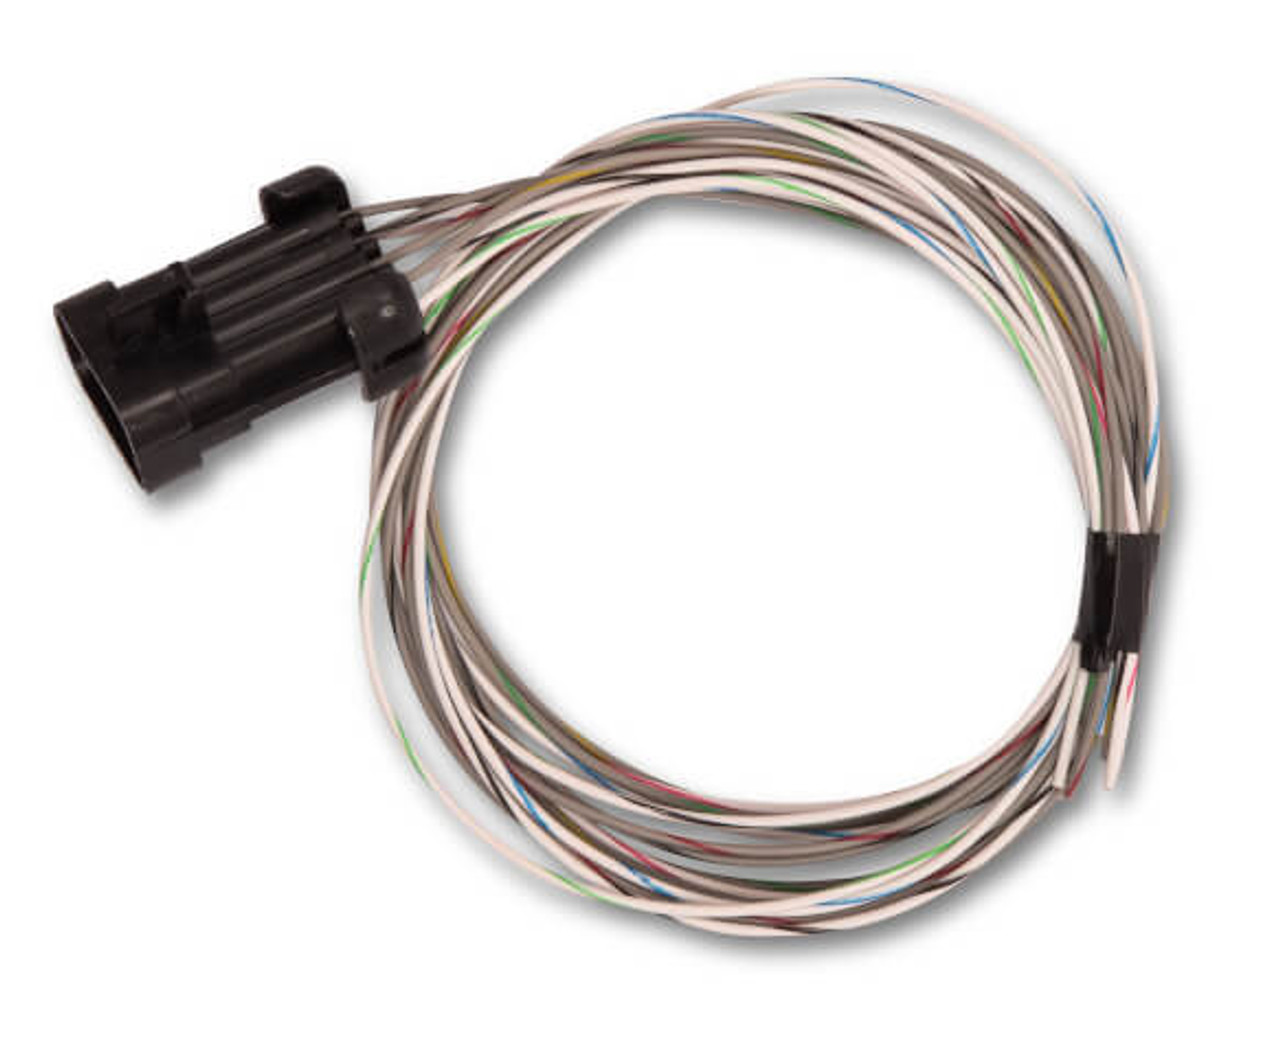 hight resolution of  holley terminator x max gm ls standalone ecu wire harness 550 916 24x